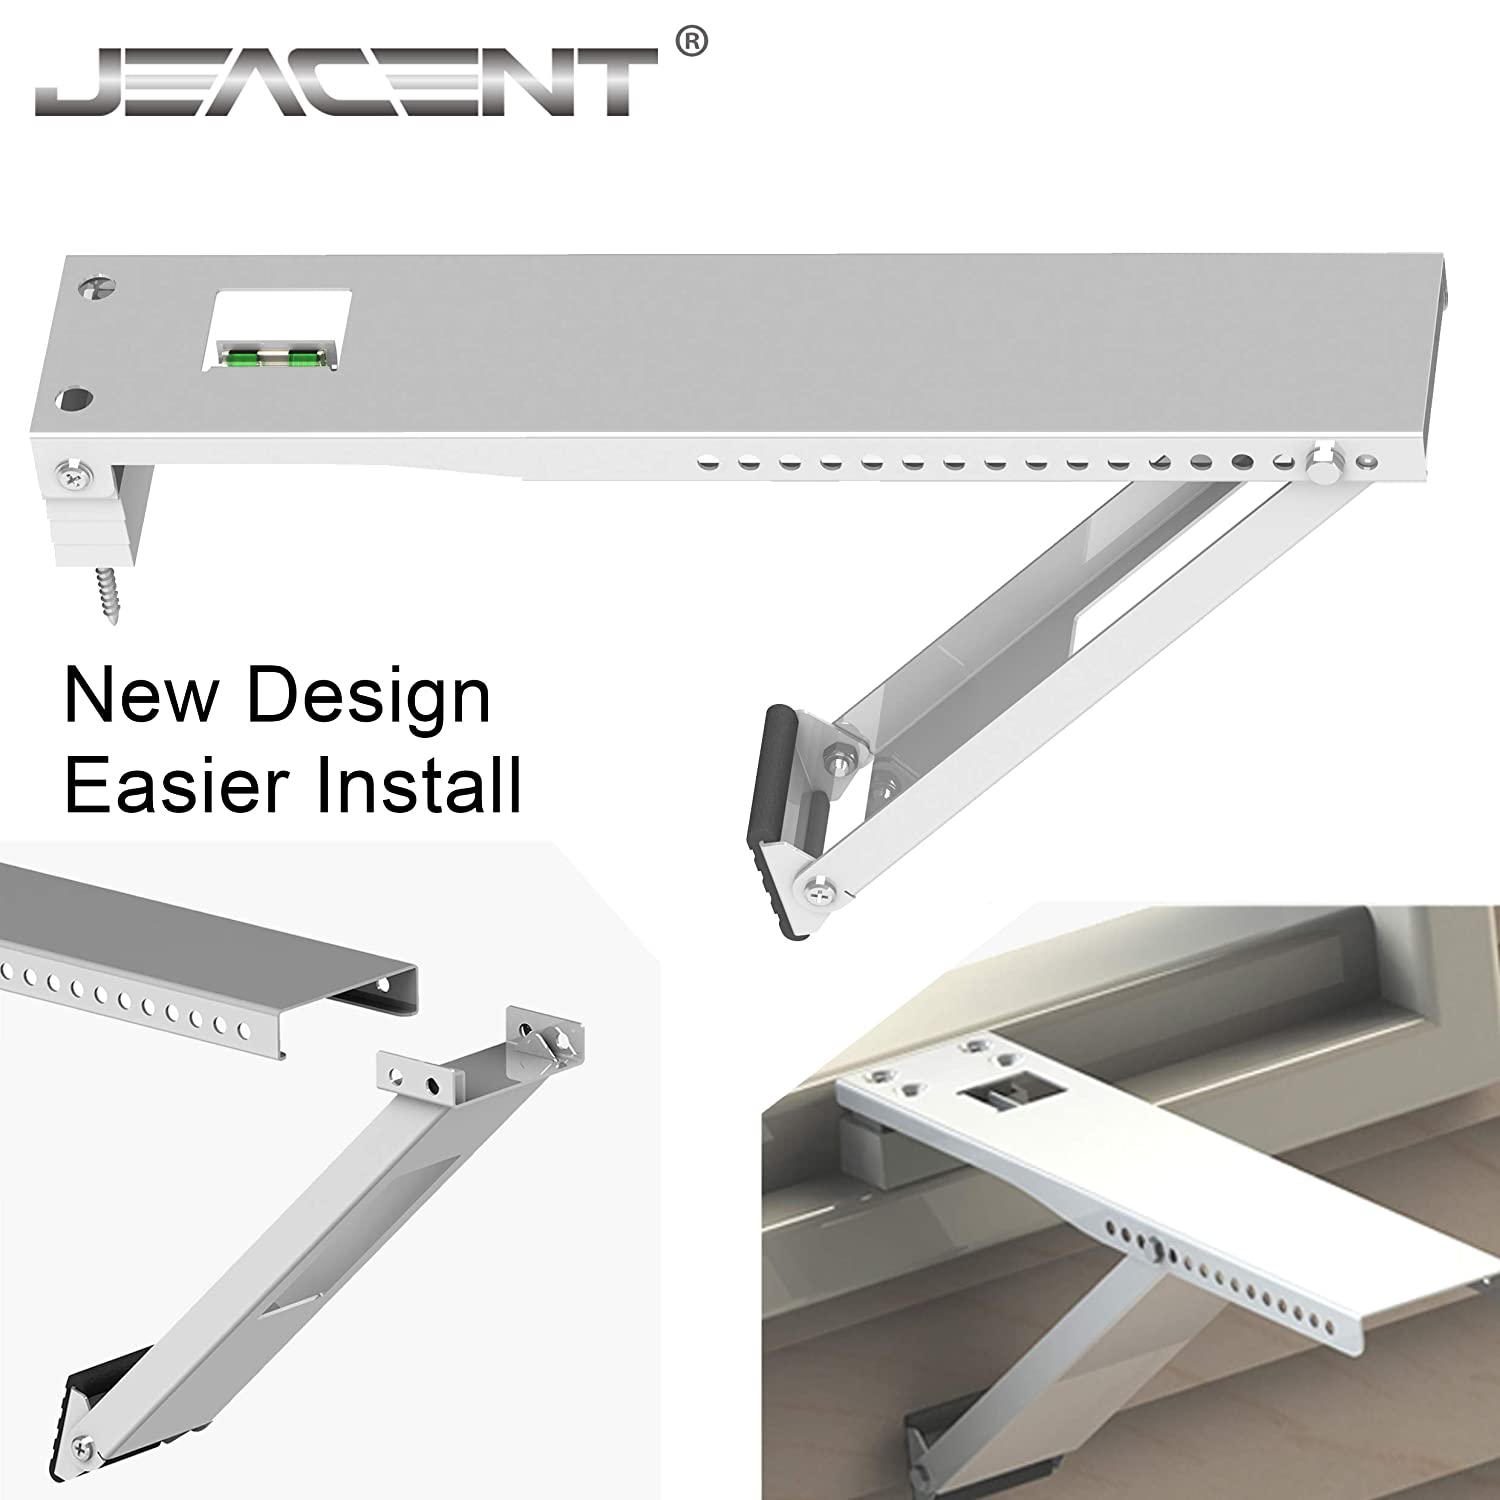 Amazon.com: Jeacent Window Air Conditioner Brackets, Universal AC Support Bracket, Heavy Duty - Up to 165 lbs 17\u201d Arm for A/C Units: Home \u0026 Kitchen